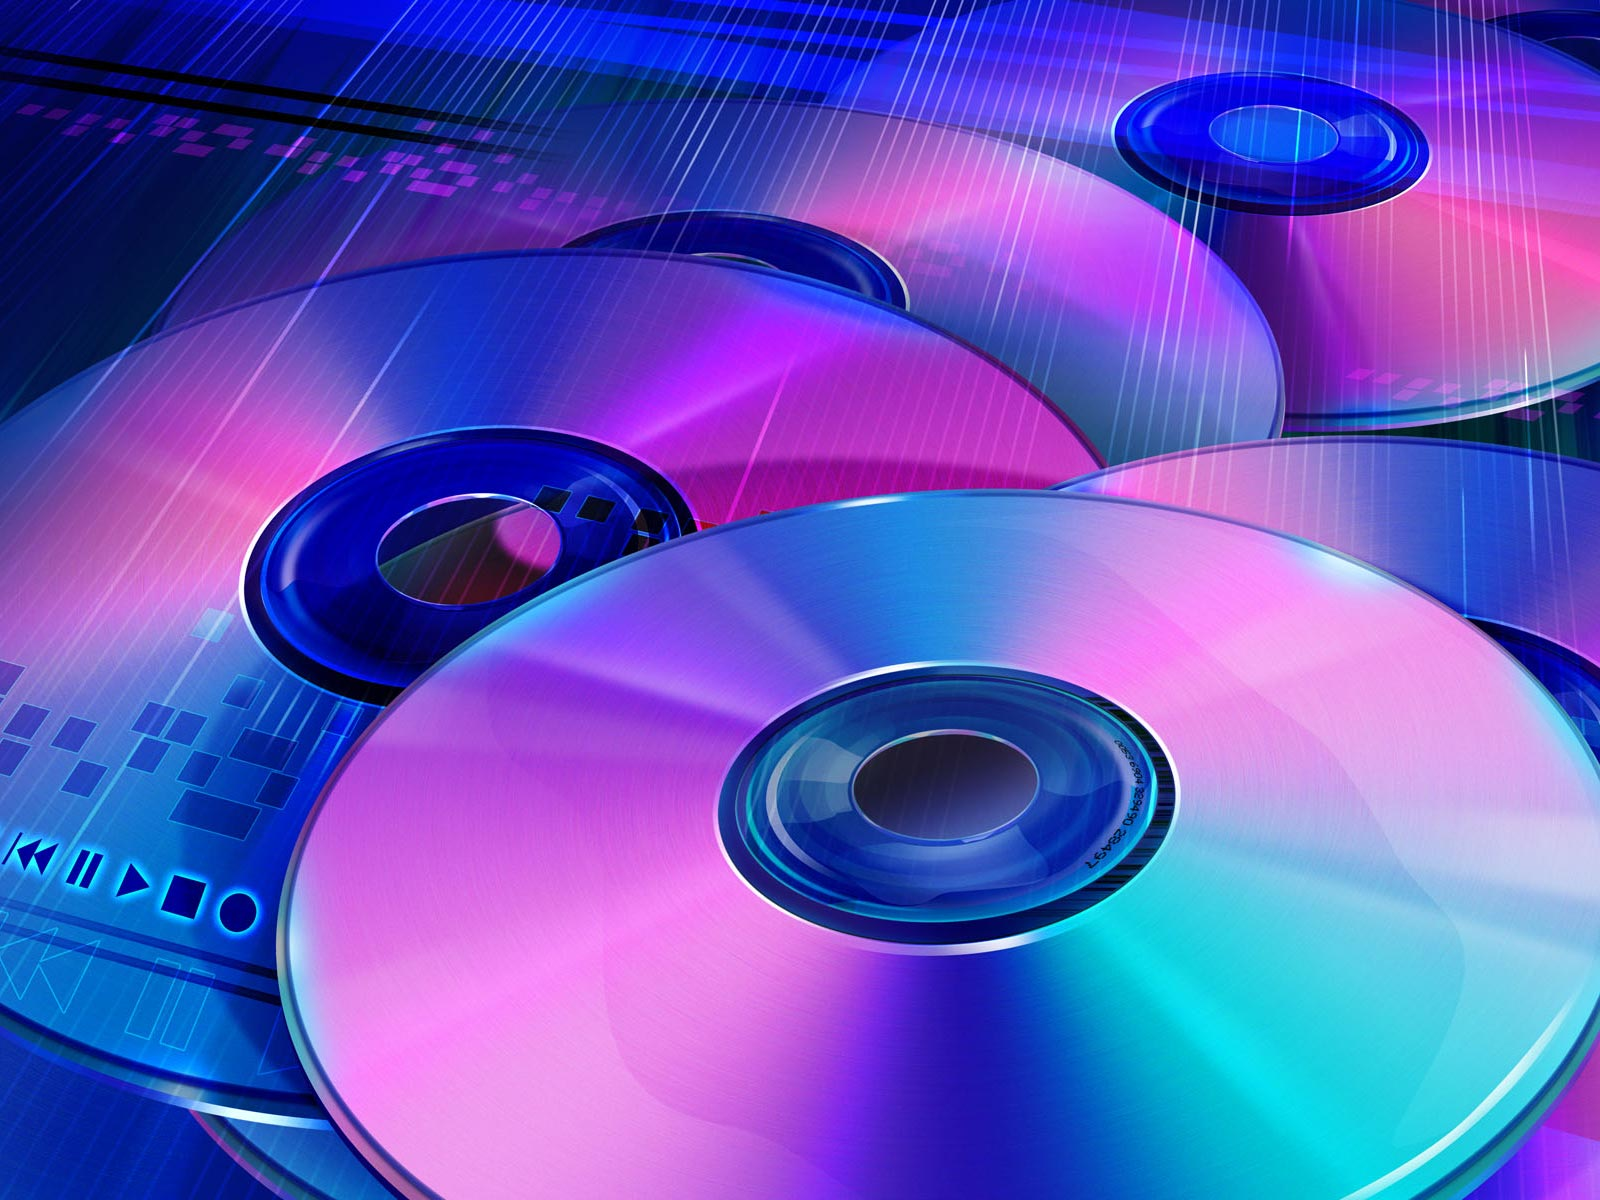 File:CD DVD Collections.jpg - Wikimedia Commons